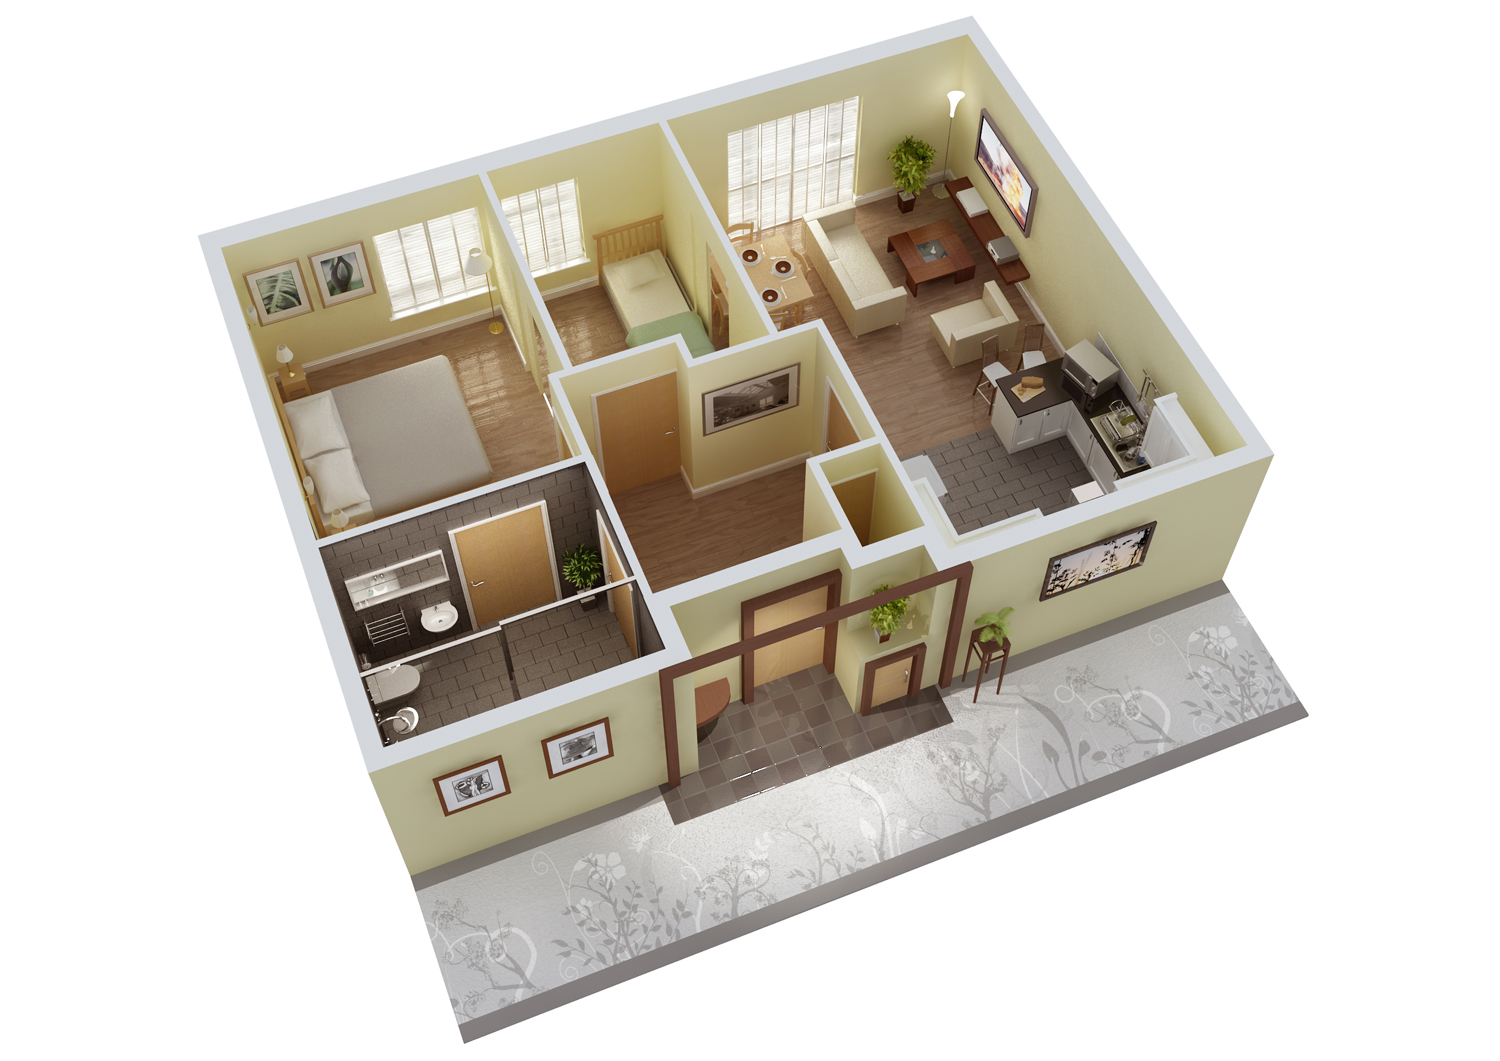 Mathematics resources project 3d floor plan House floor plan design